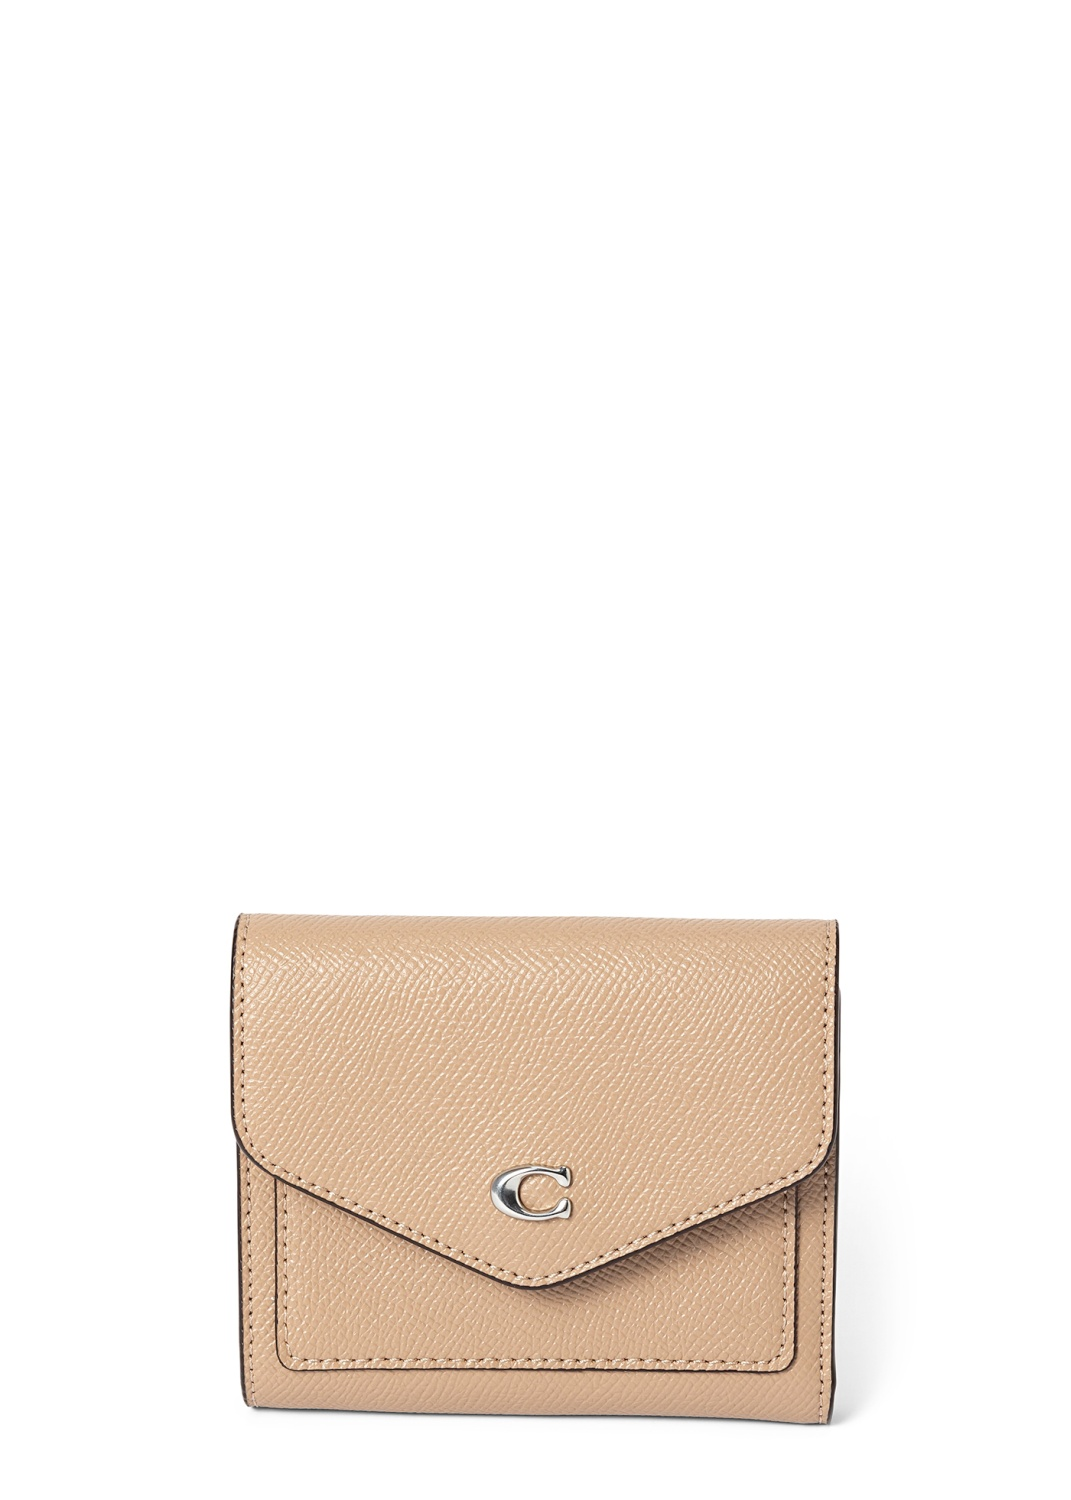 crossgrain leather wyn small wallet image number 0